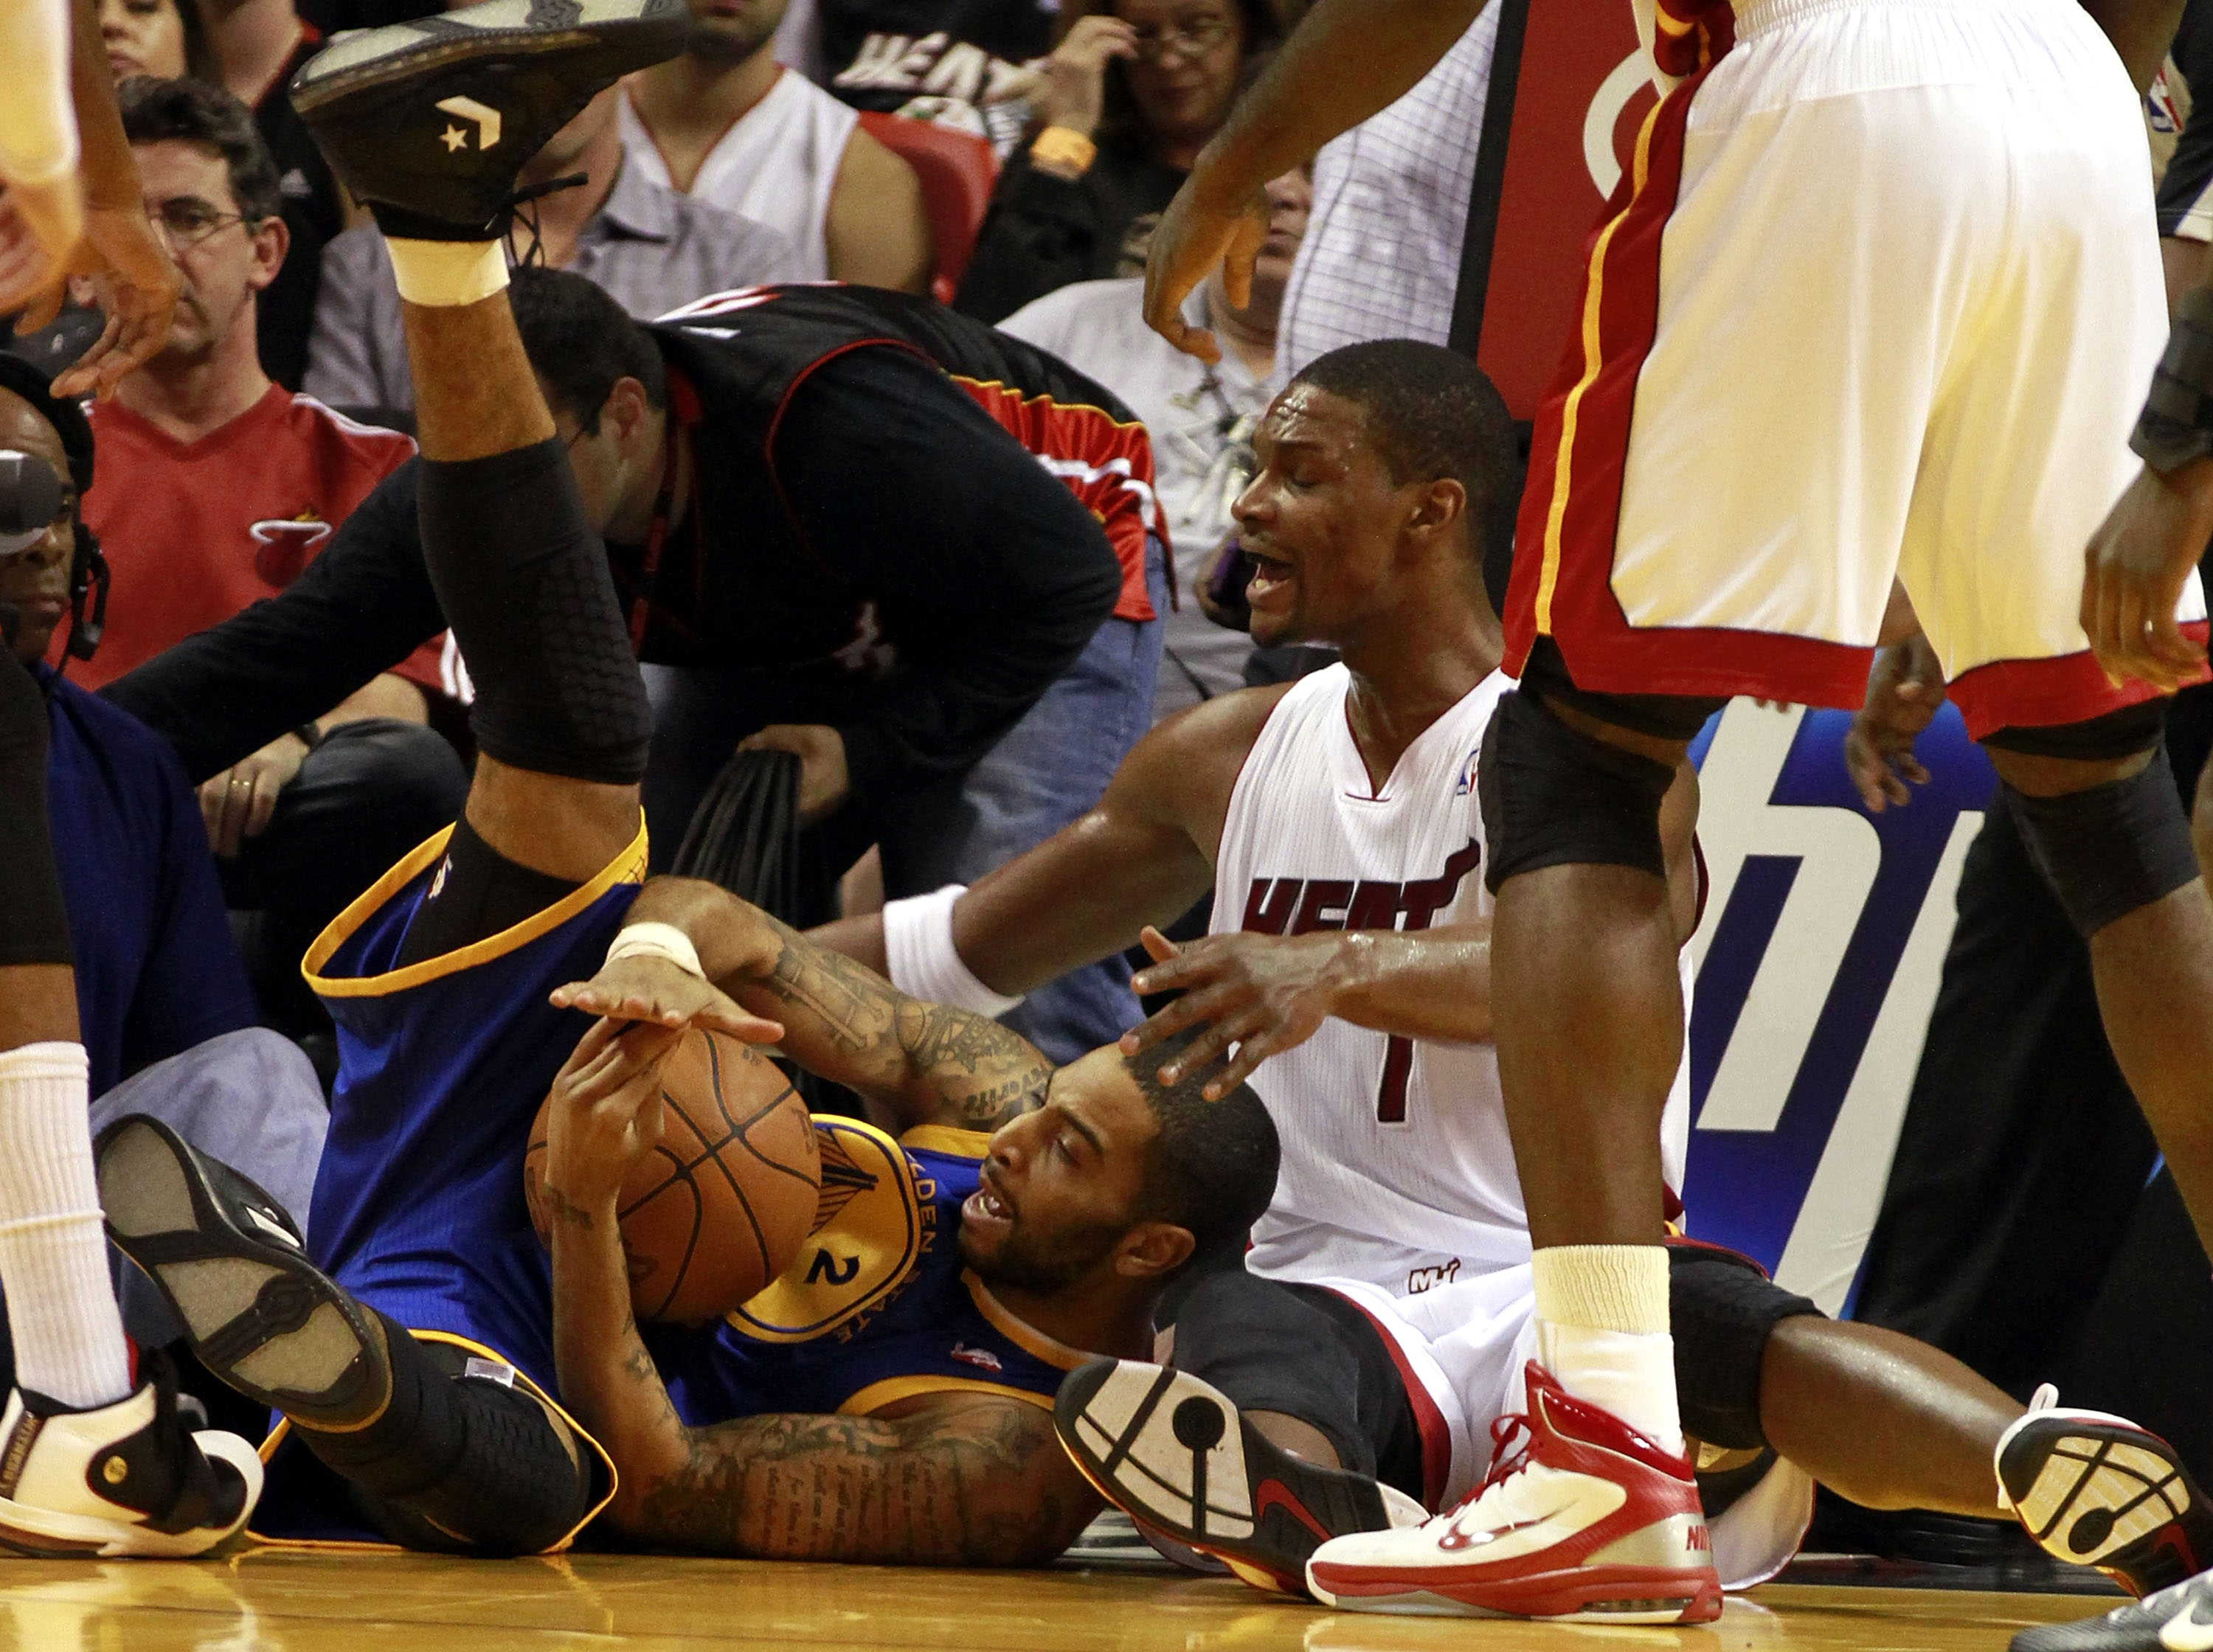 MIAMI, FL - JANUARY 01:  Forward Chris Bosh #1 of the Miami Heat rebounds against the Golden State Warriors at American Airlines Arena on January 1, 2011 in Miami, Florida.  NOTE TO USER: User expressly acknowledges and agrees that, by downloading and/or